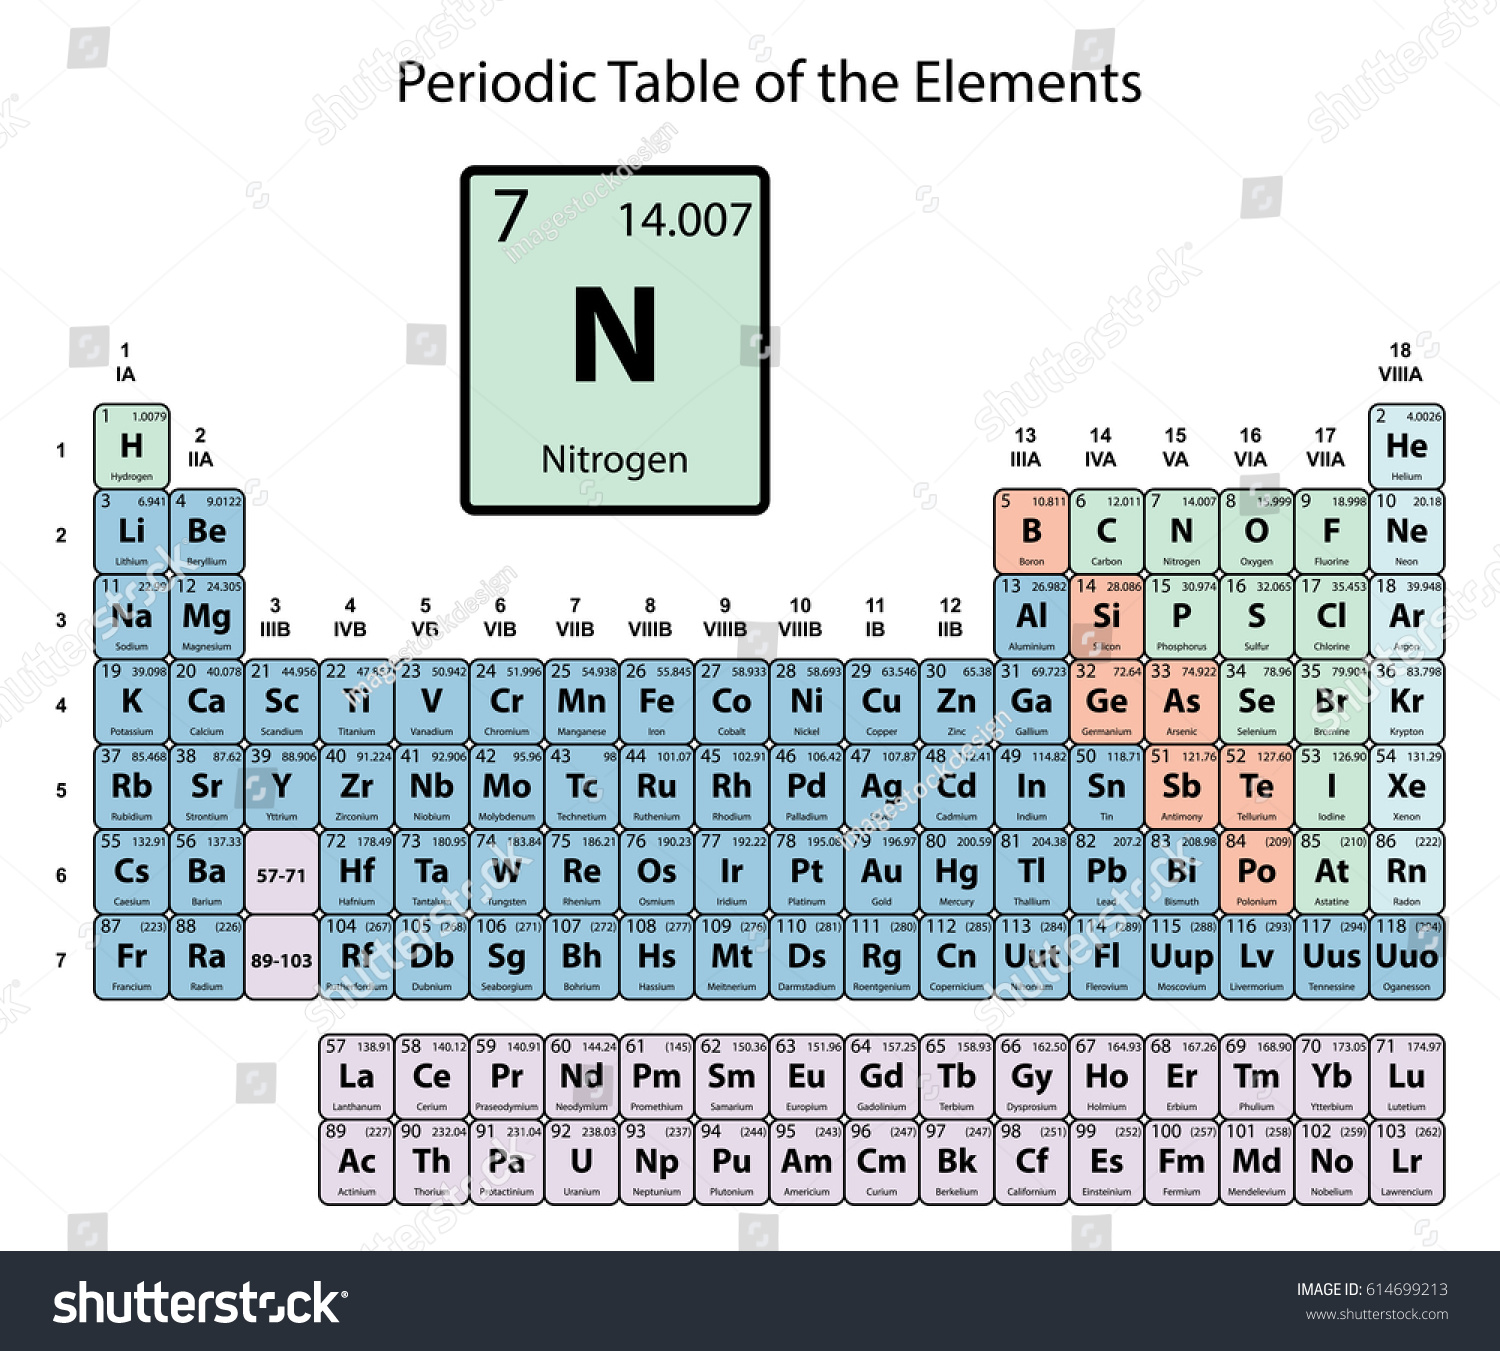 Salt symbol periodic table image collections periodic table images nitrogen symbol periodic table gallery periodic table images nitrogen big on periodic table elements stock vector gamestrikefo Images